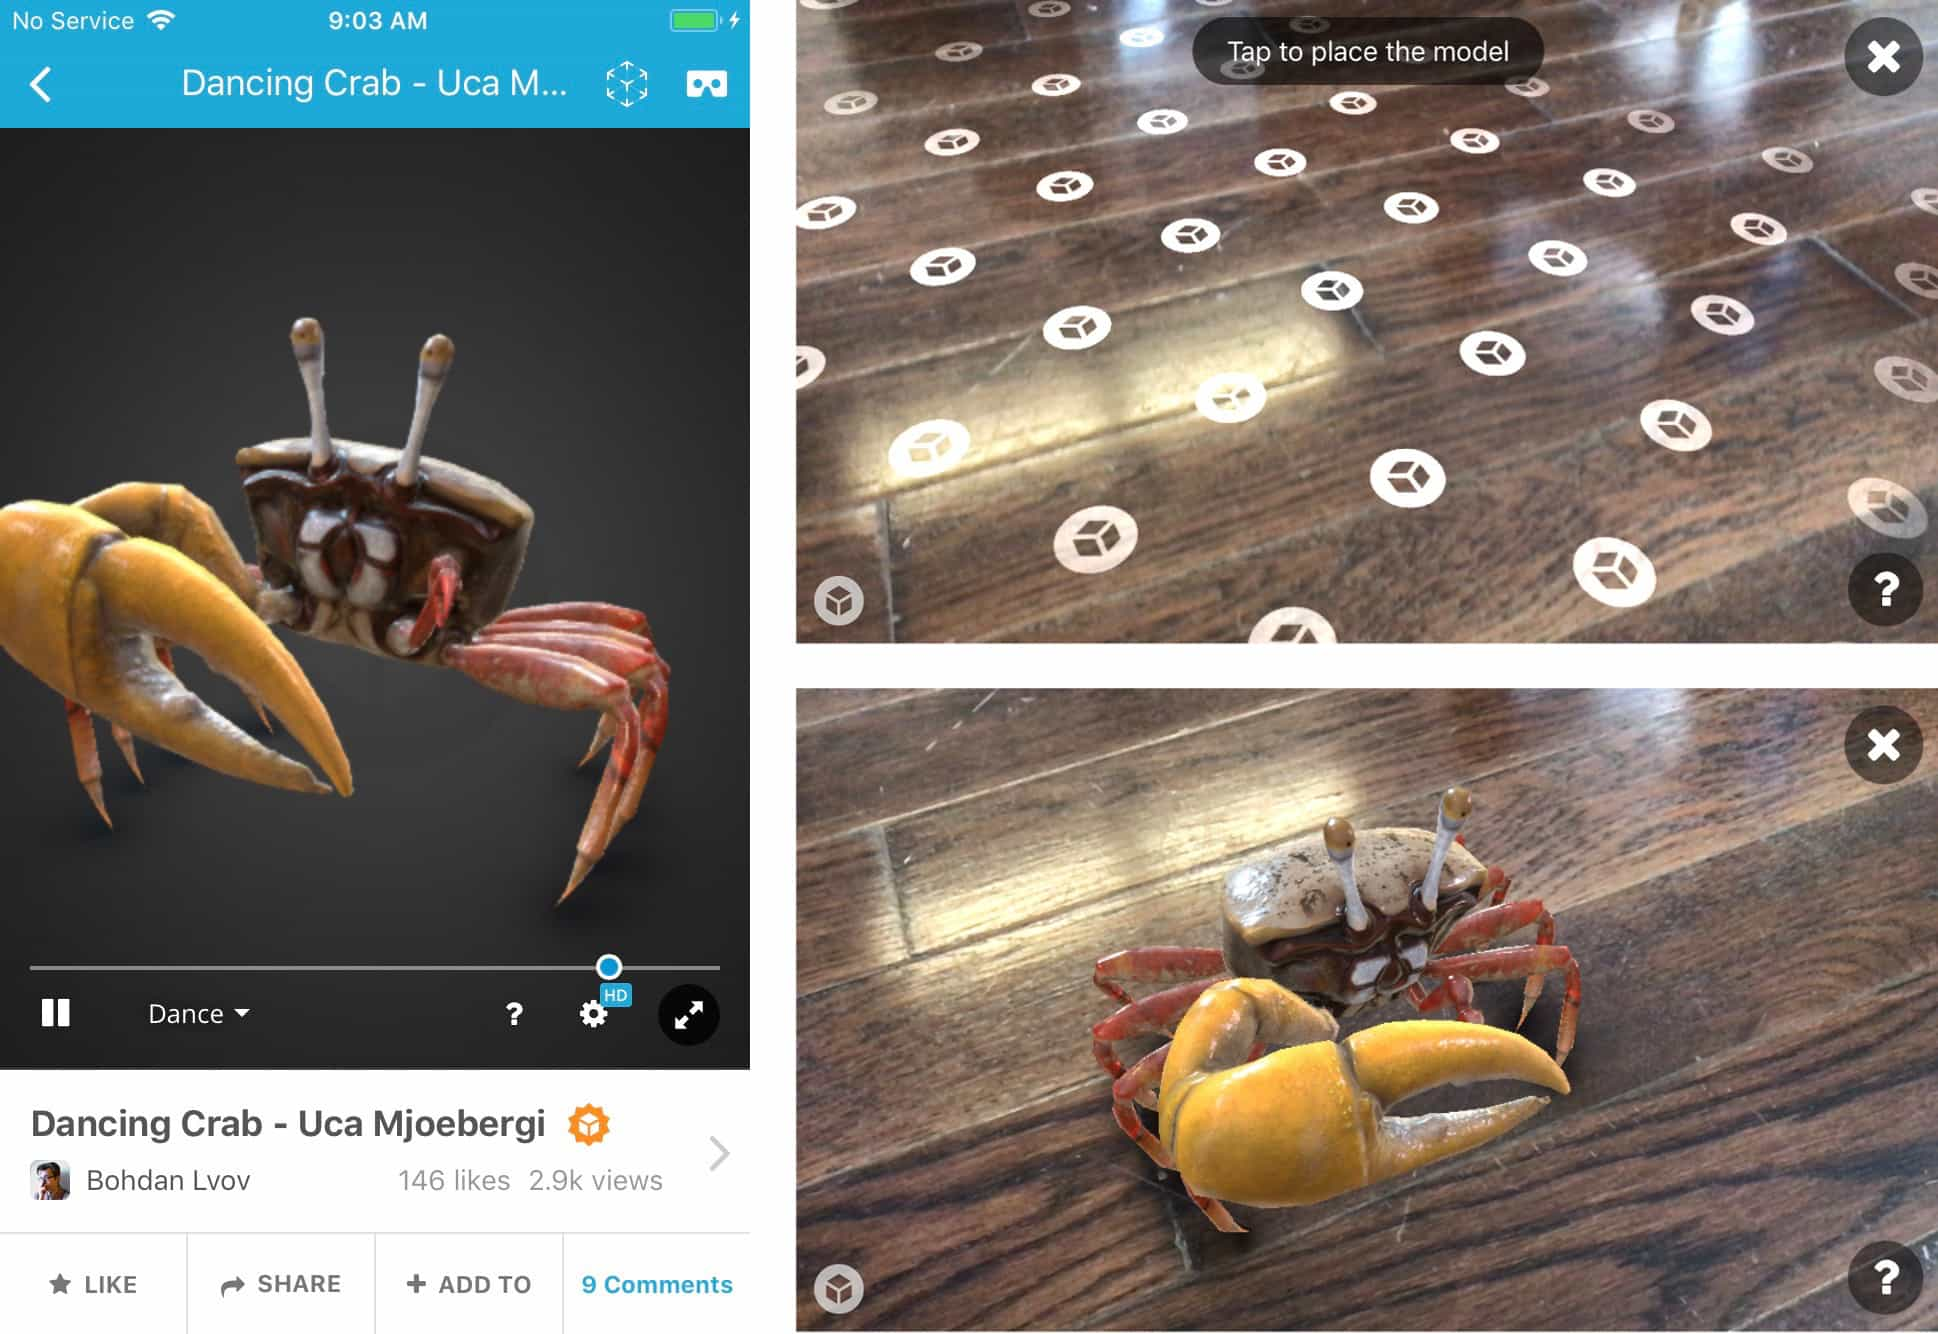 Announcing Sketchfab AR on iOS